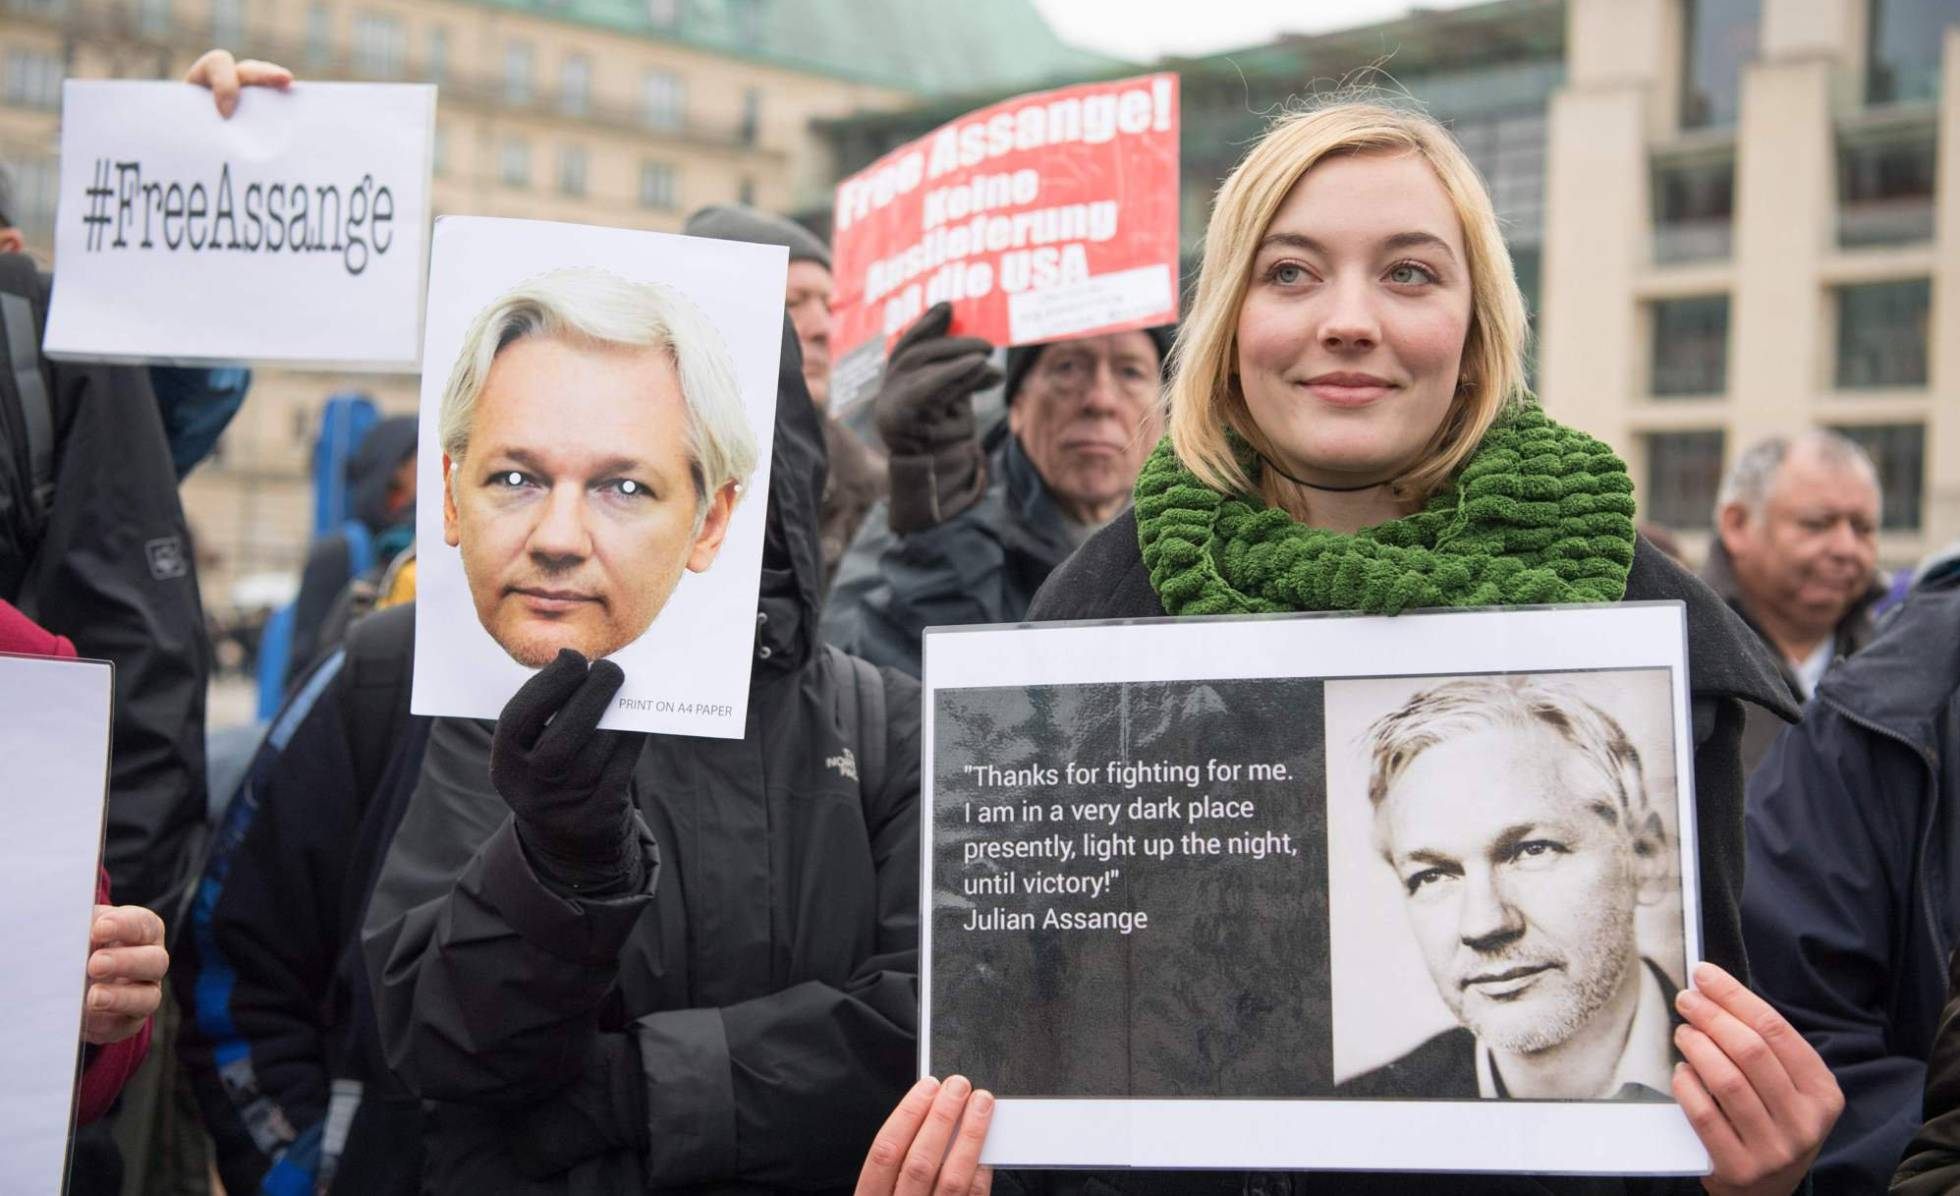 Journalist Julian Assange Charged With New American Indictment